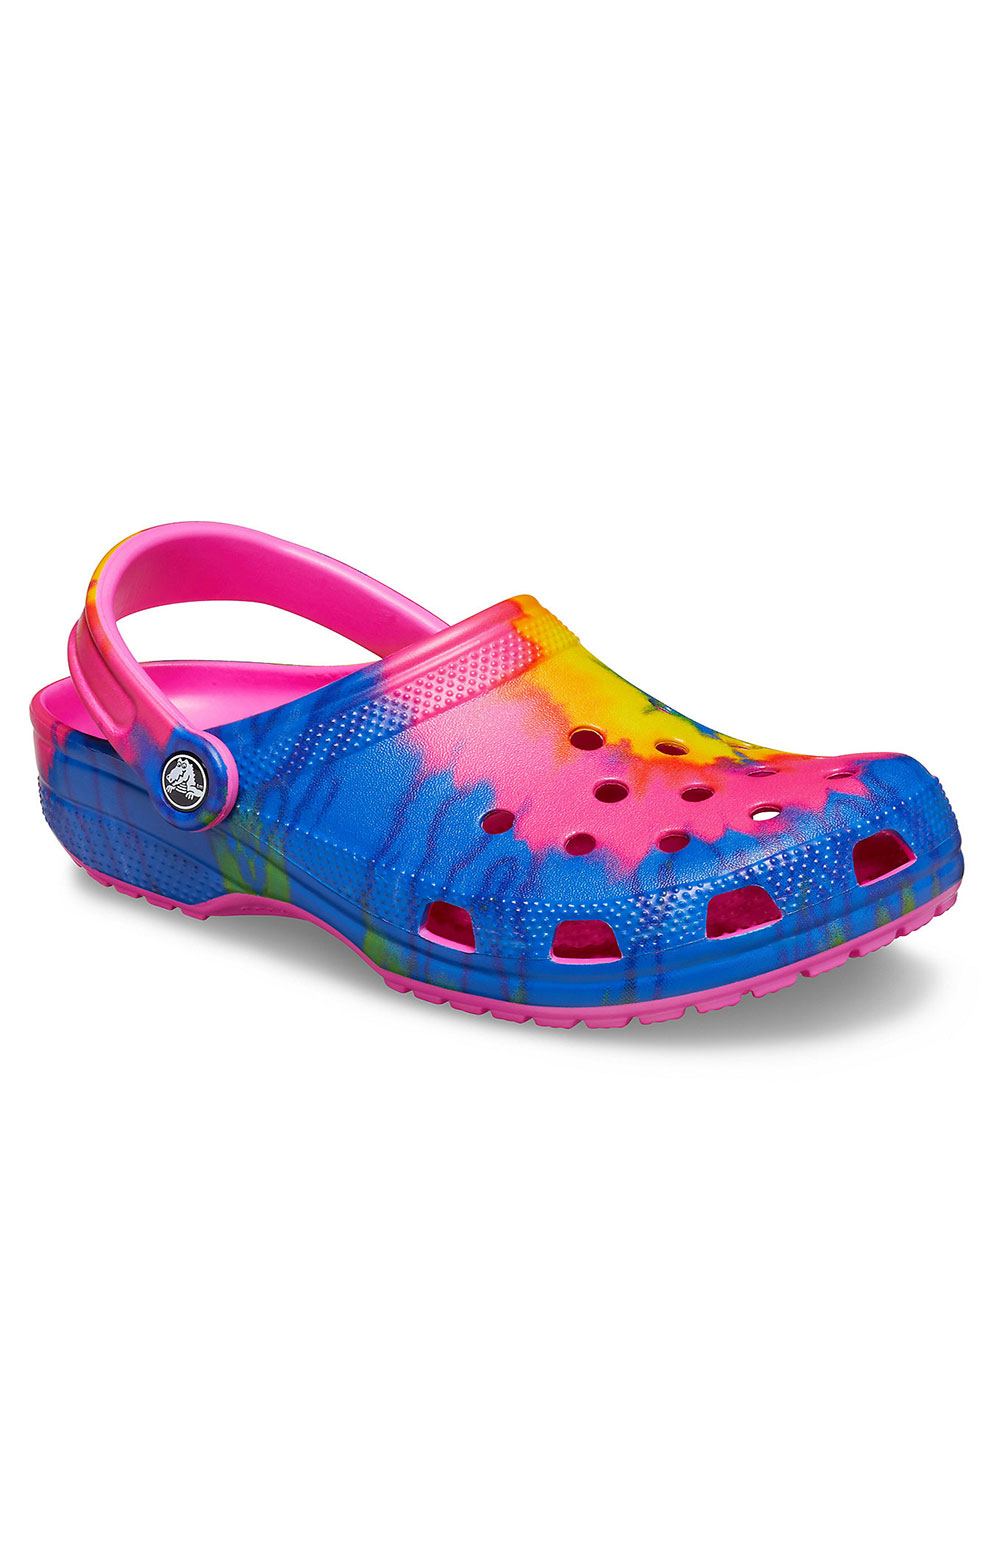 Classic Tie-Dye Graphic Clogs - Electric Pink/Multi